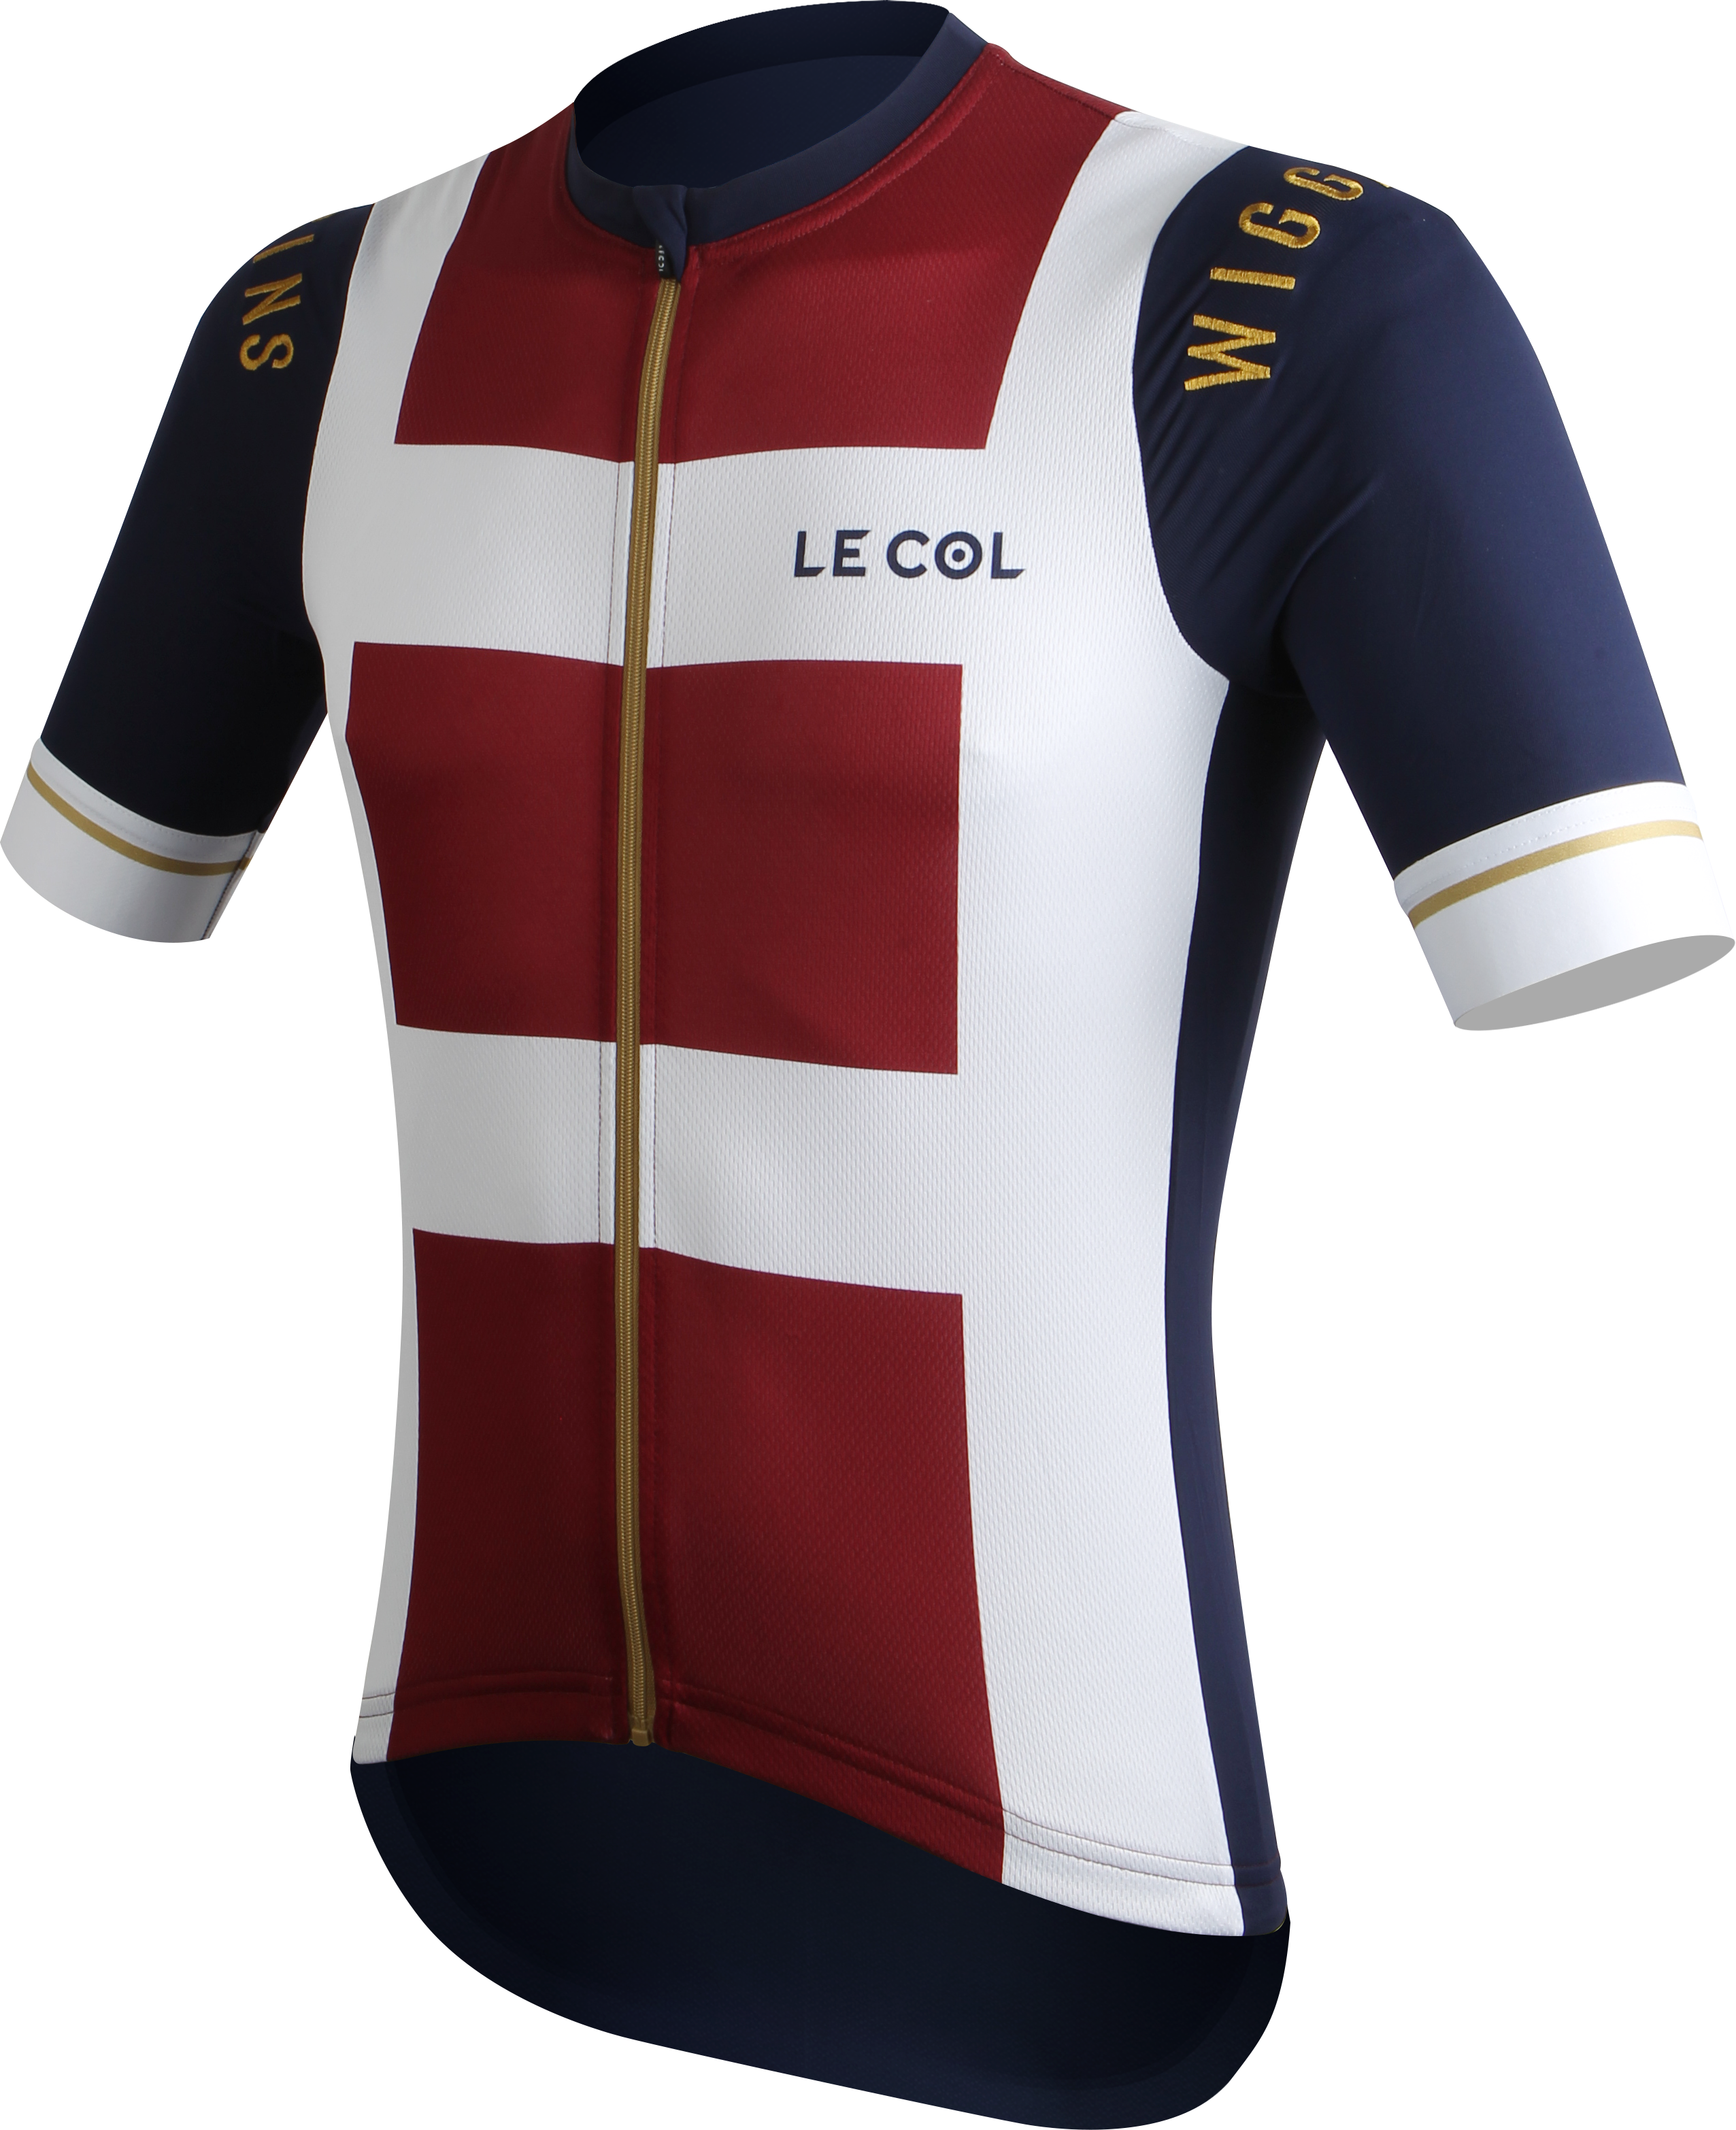 Le Col by Wiggins   PRO Mens Cycling Jersey   White   Red - 700 50c994af7